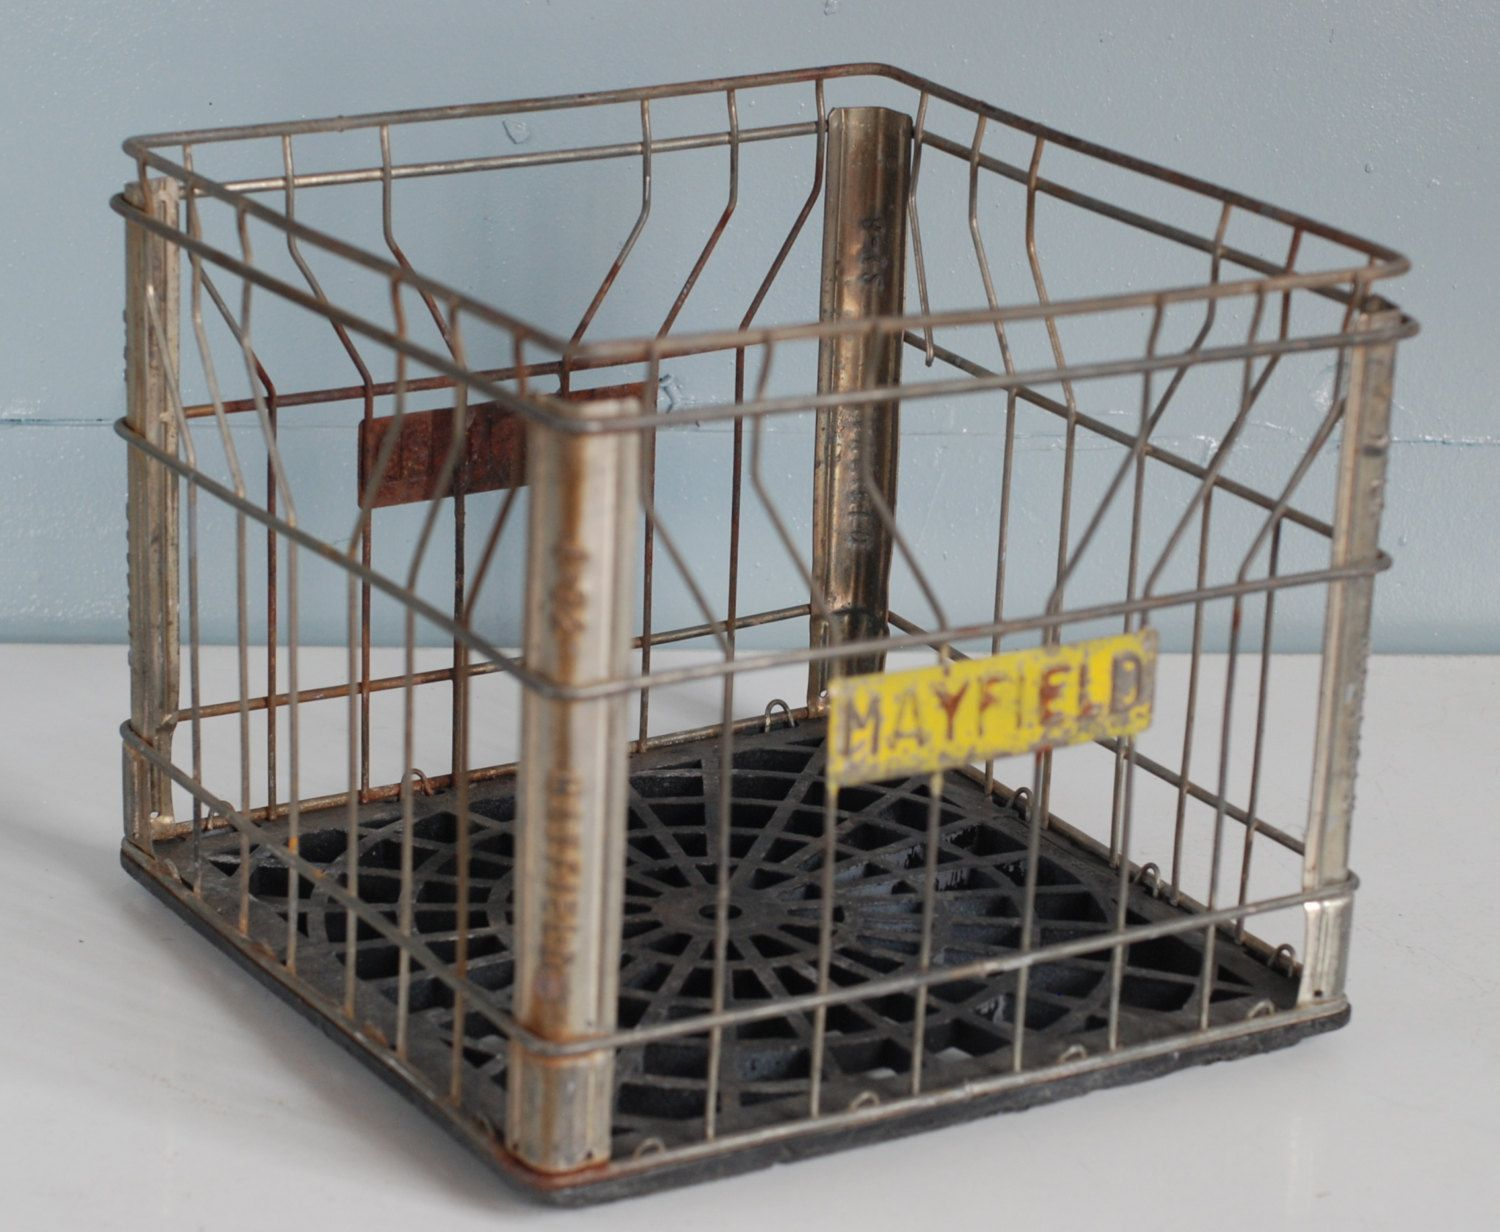 Vintage Mayfield Milk Crate. $29.50, via Etsy.